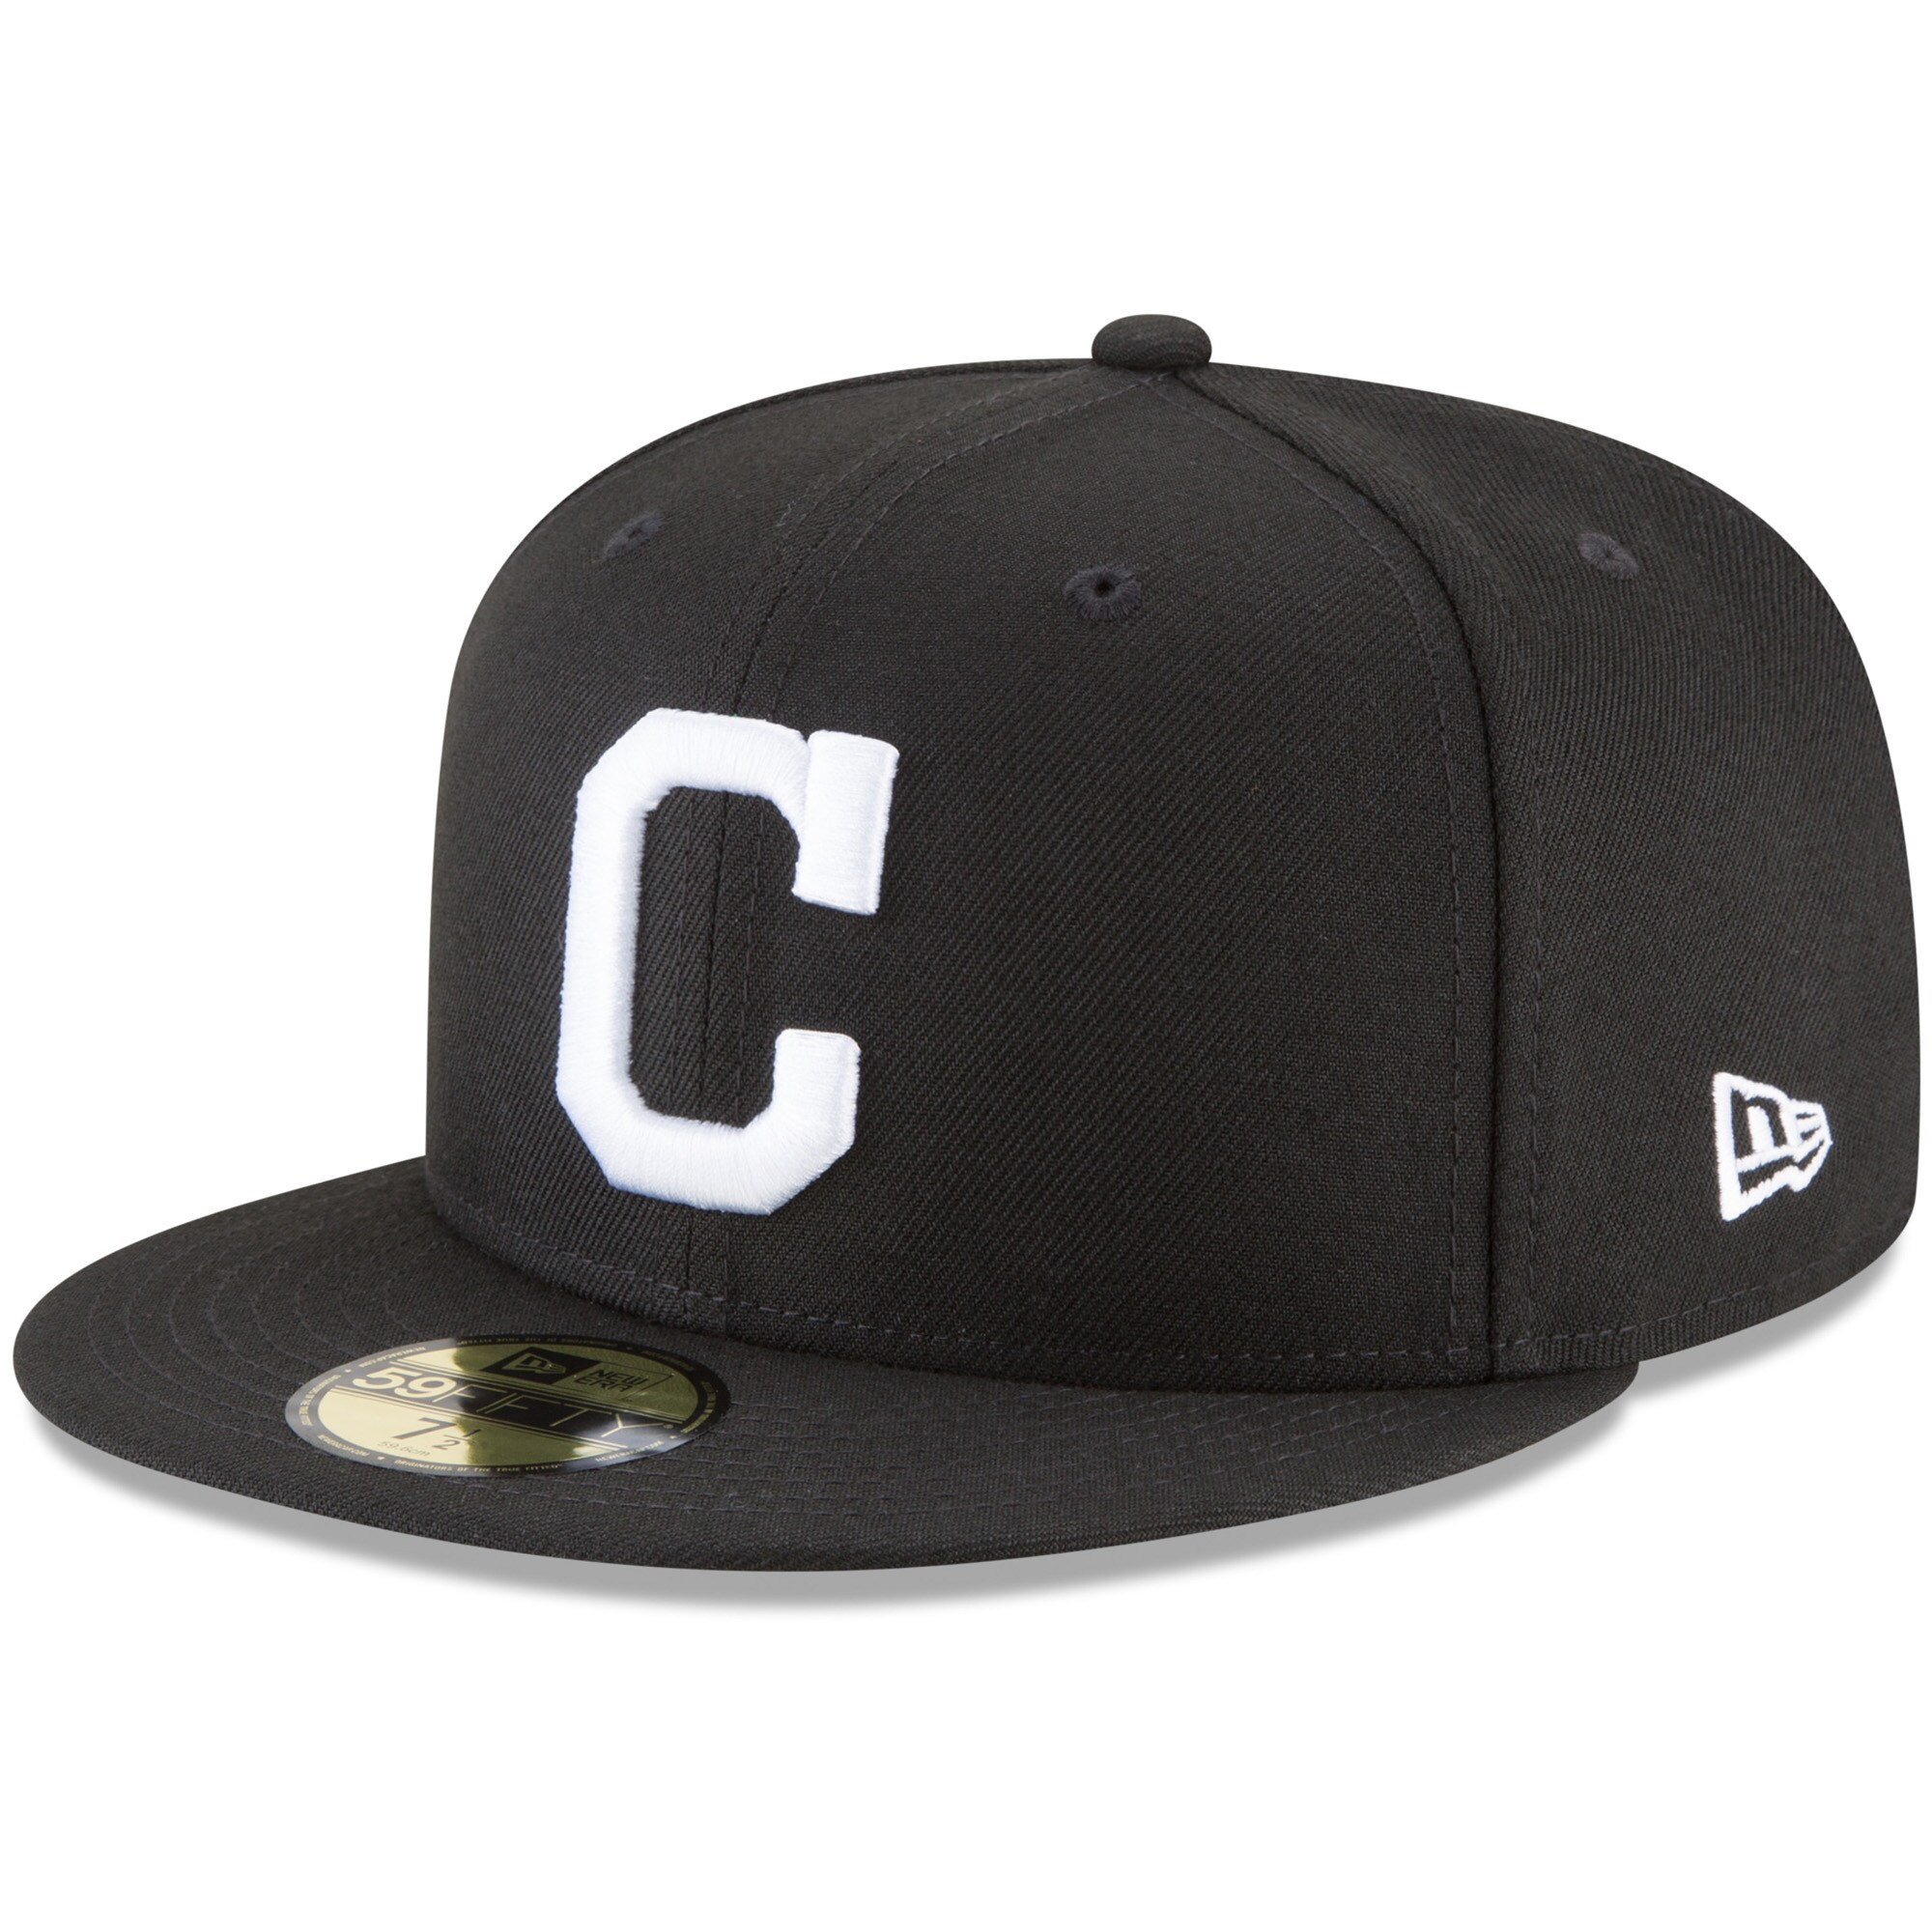 Cleveland Indians New Era 59FIFTY Fitted Hat - Black